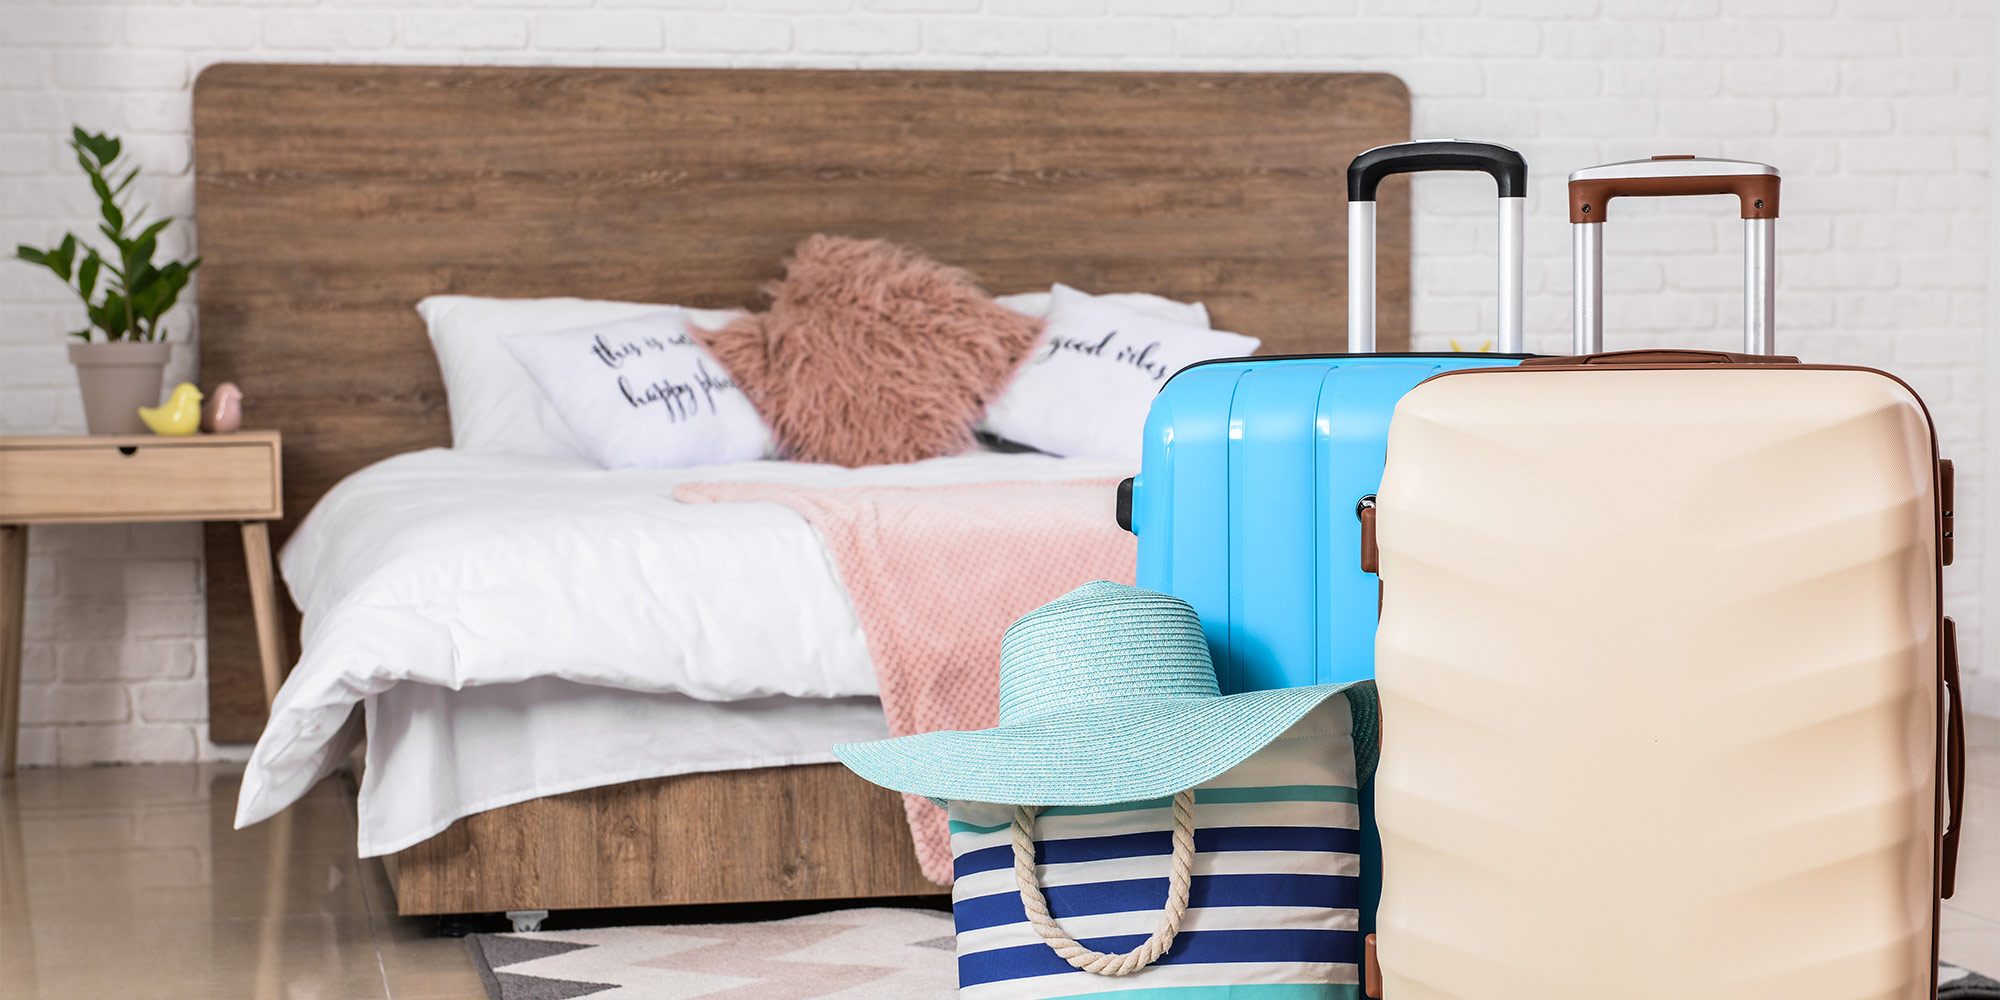 luggage in front of wood bed